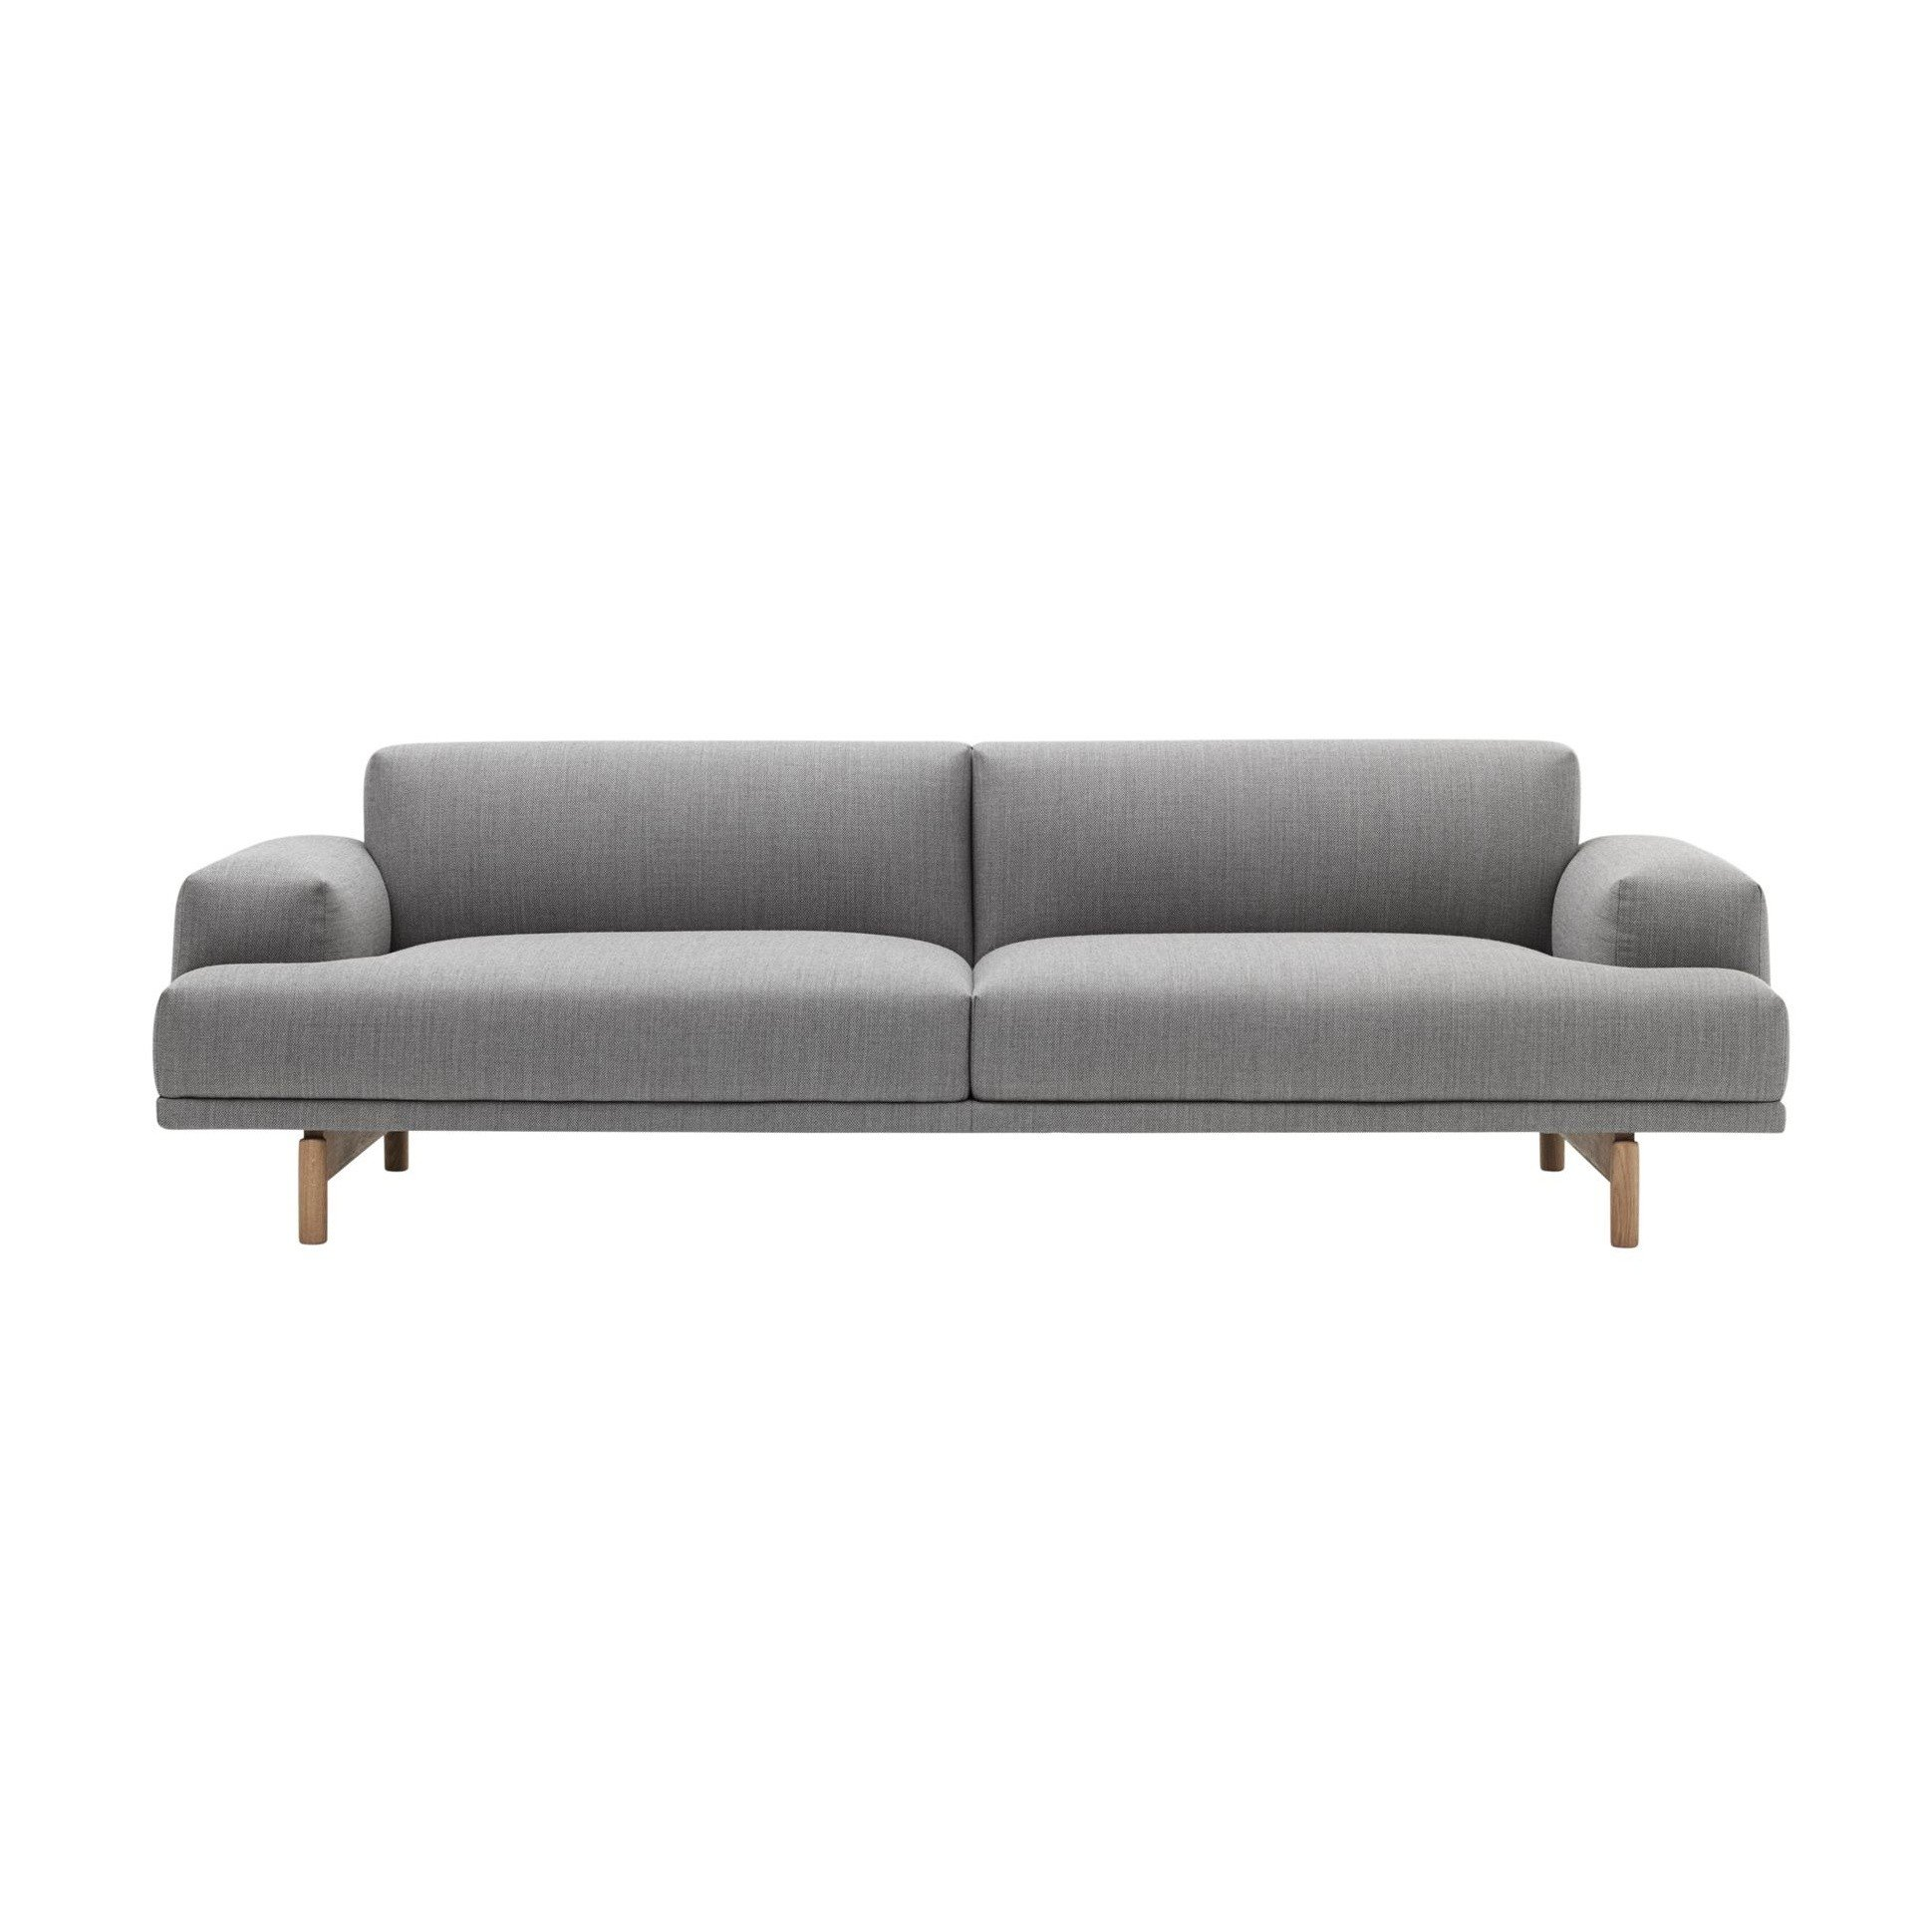 Furniture Clearance Vancouver Sofa Bed Clearance Vancouver Brokeasshome